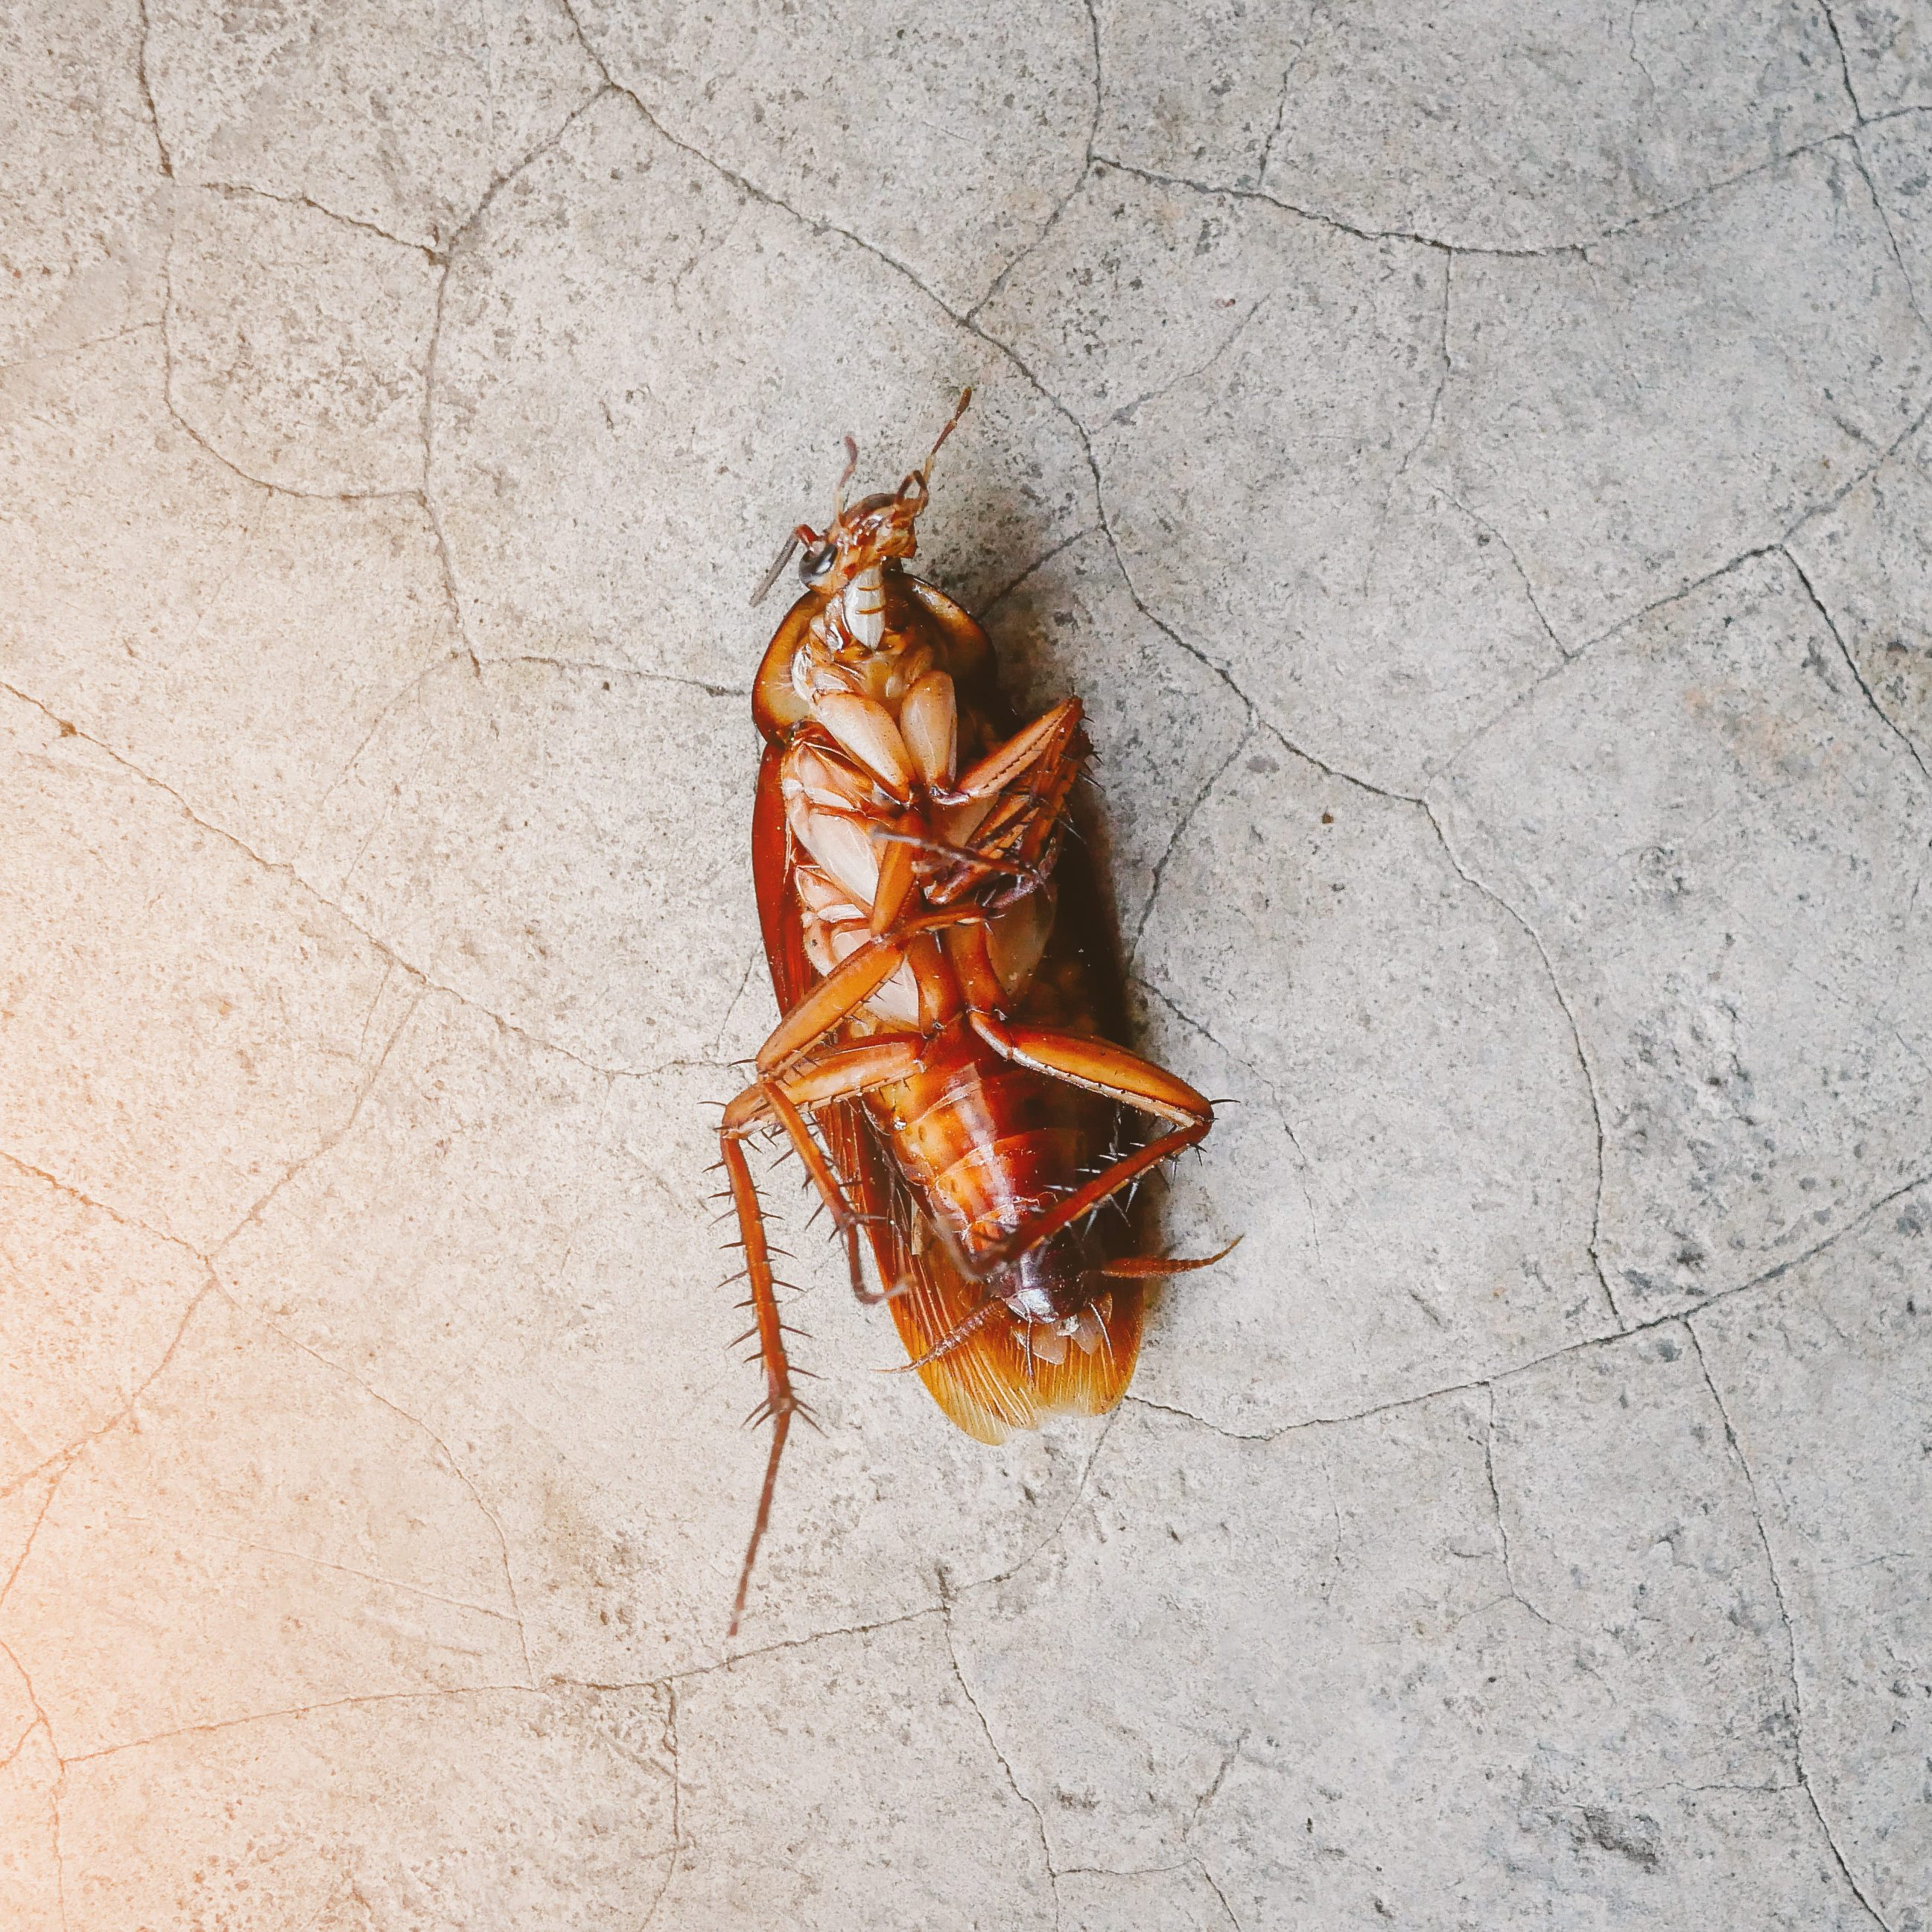 High Angle View Of Dead Cockroach On Floor.